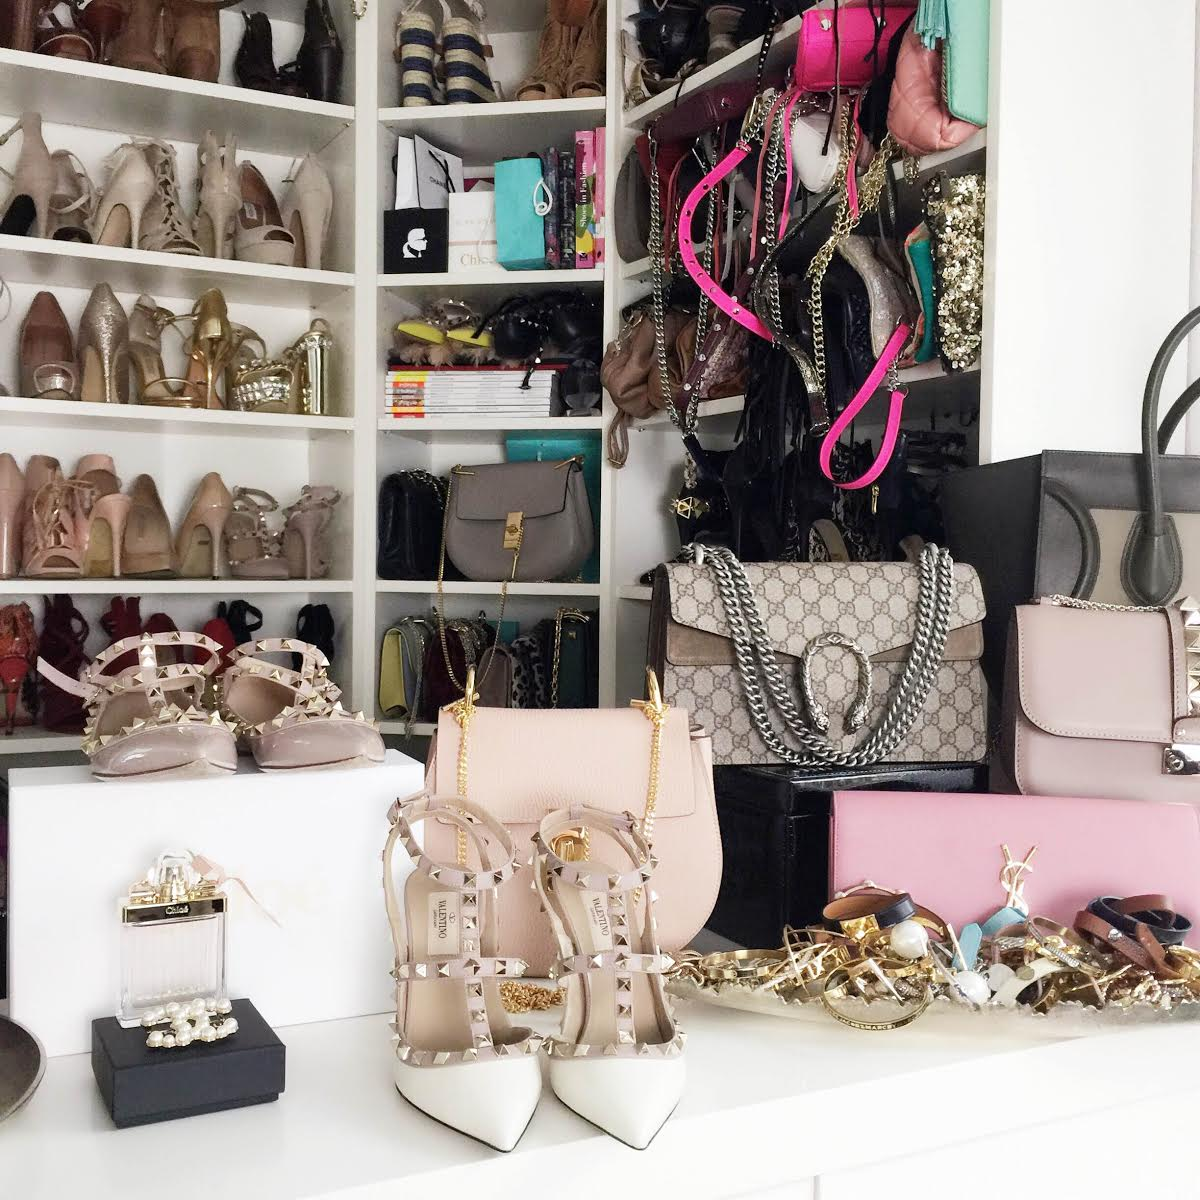 fashionhippieloves-closet-bags-shoes